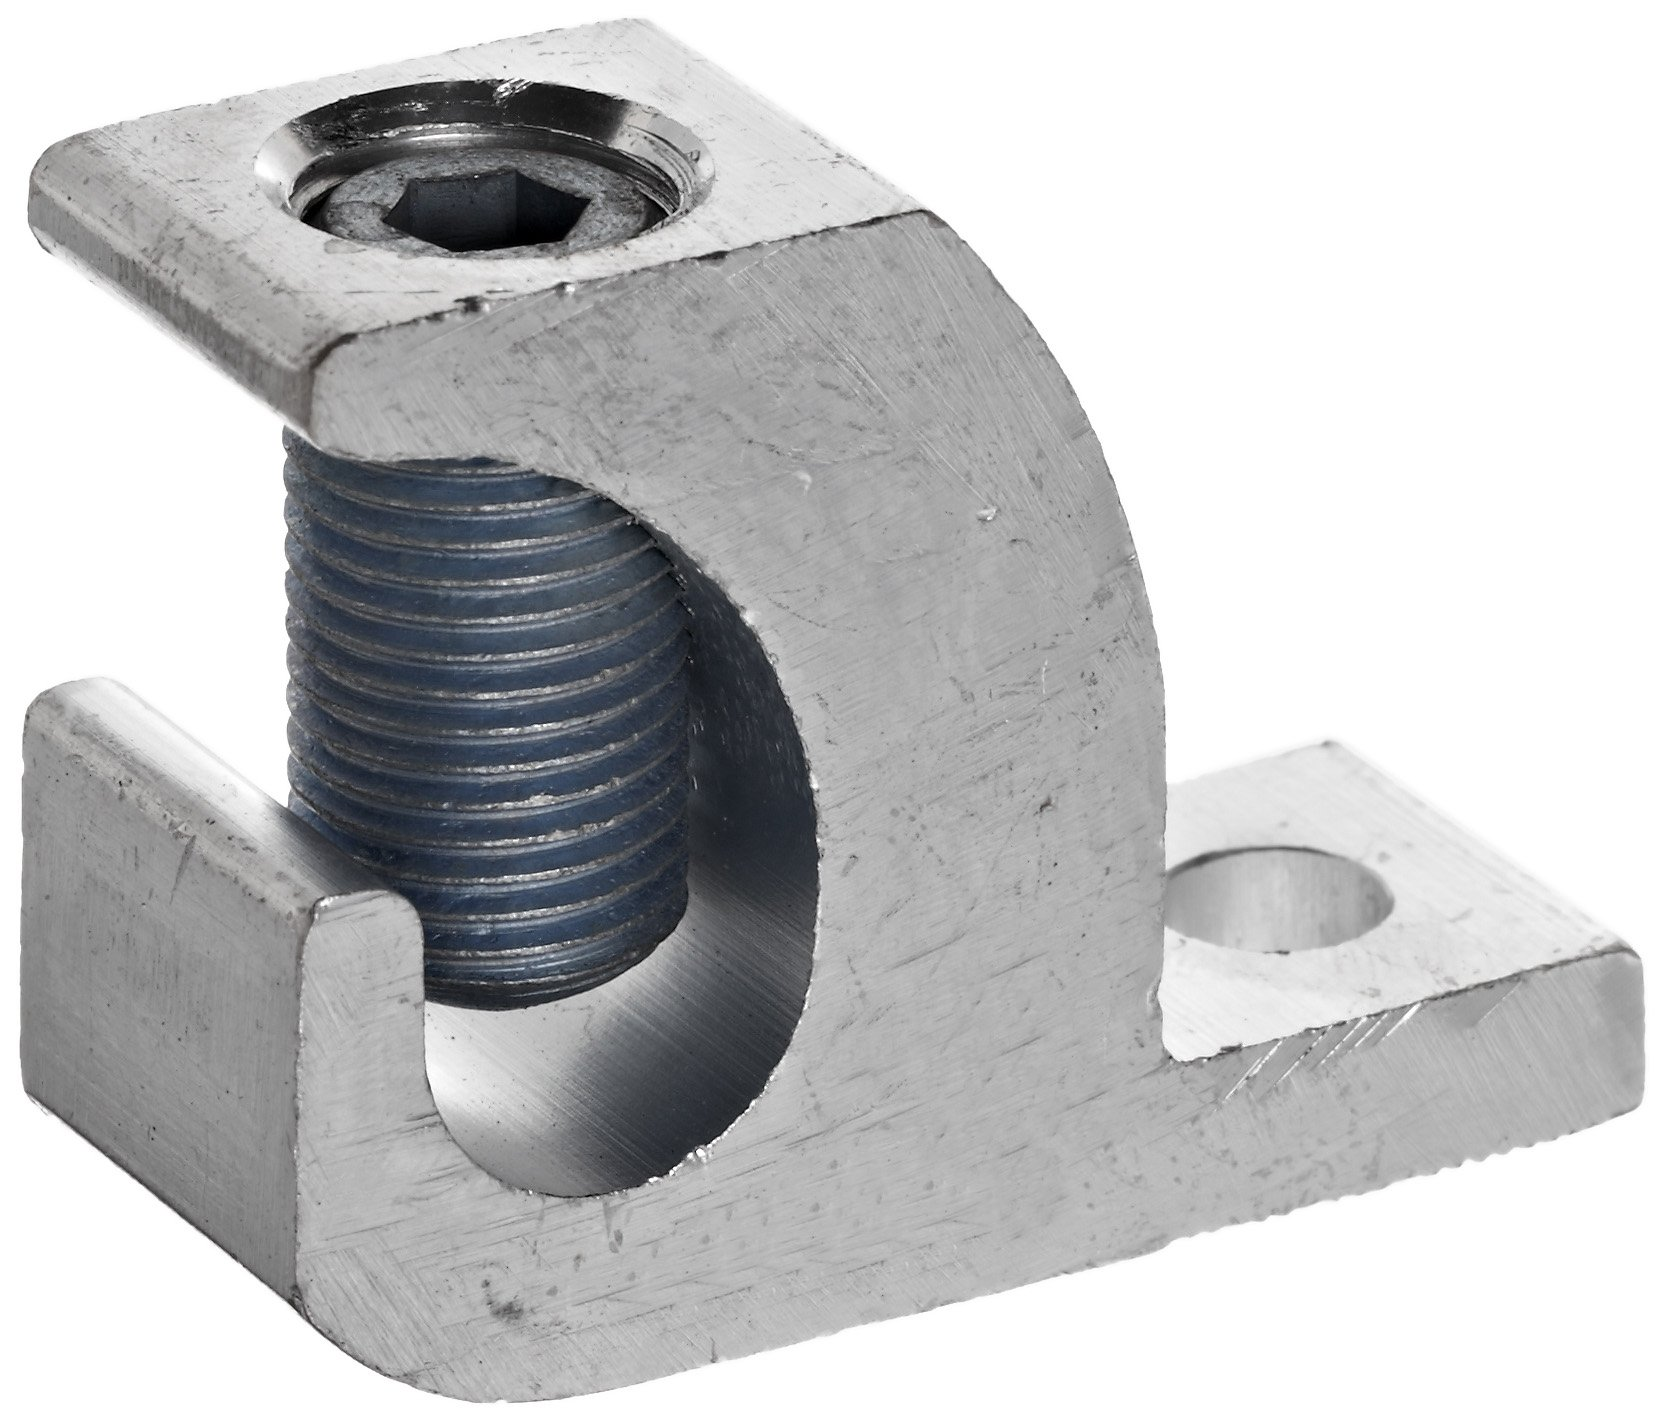 Morris Products 90580 Lay In Connector, Aluminum, Used With Copper and Aluminum Conductors, 250 - 6 Wire Range, 2.20'' Length, 0.80'' Width, 1.79'' Height, 0.33'' Bolt Size